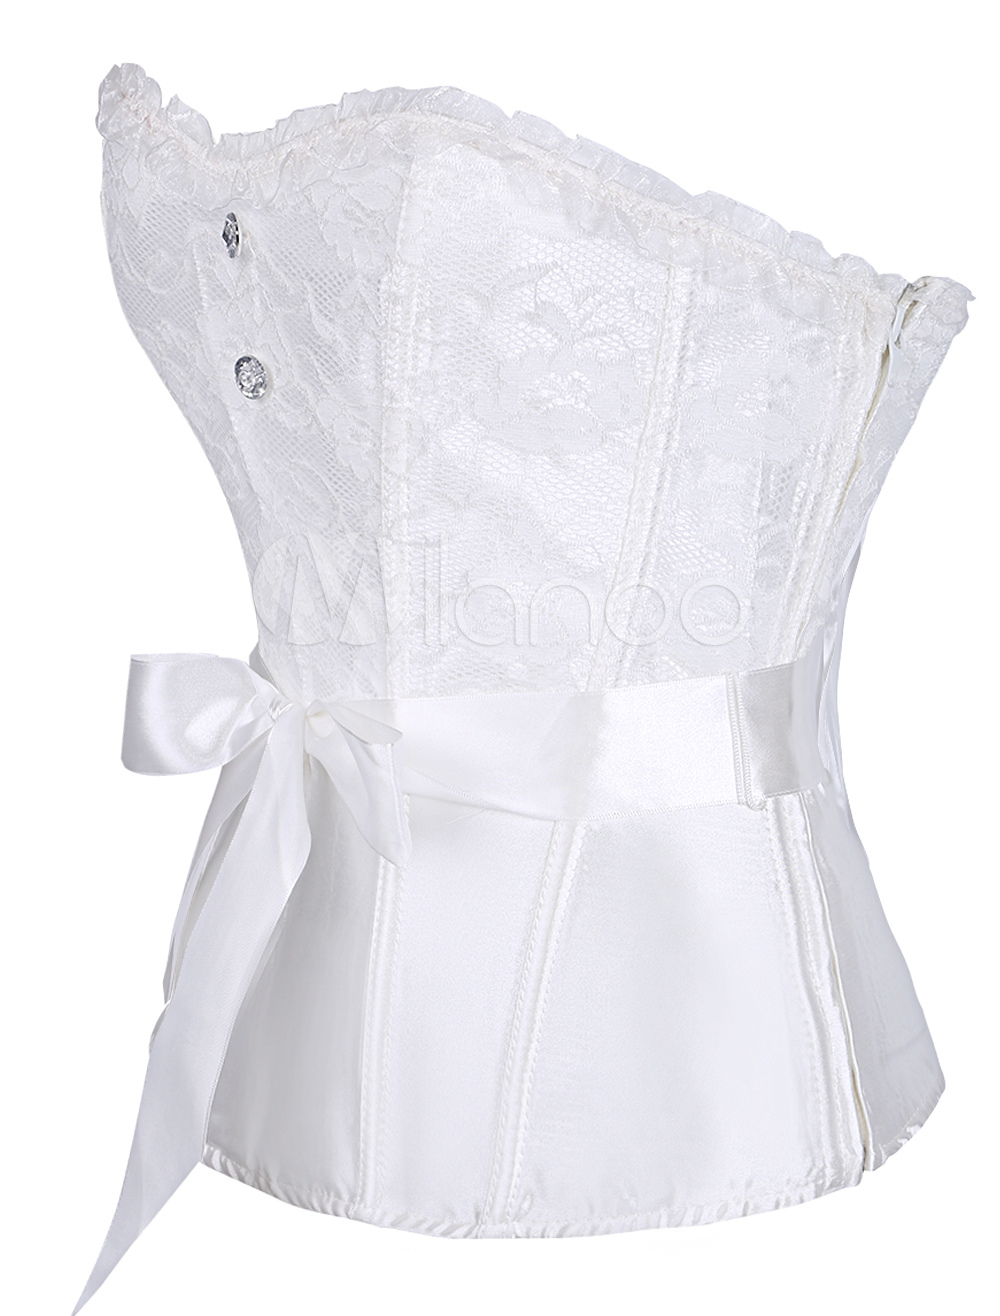 a5e6d8d75 Wedding Corset Top White Lace Bow Overbust Bridal Corsets Waist Trainer  Sexy Lingerie-No.